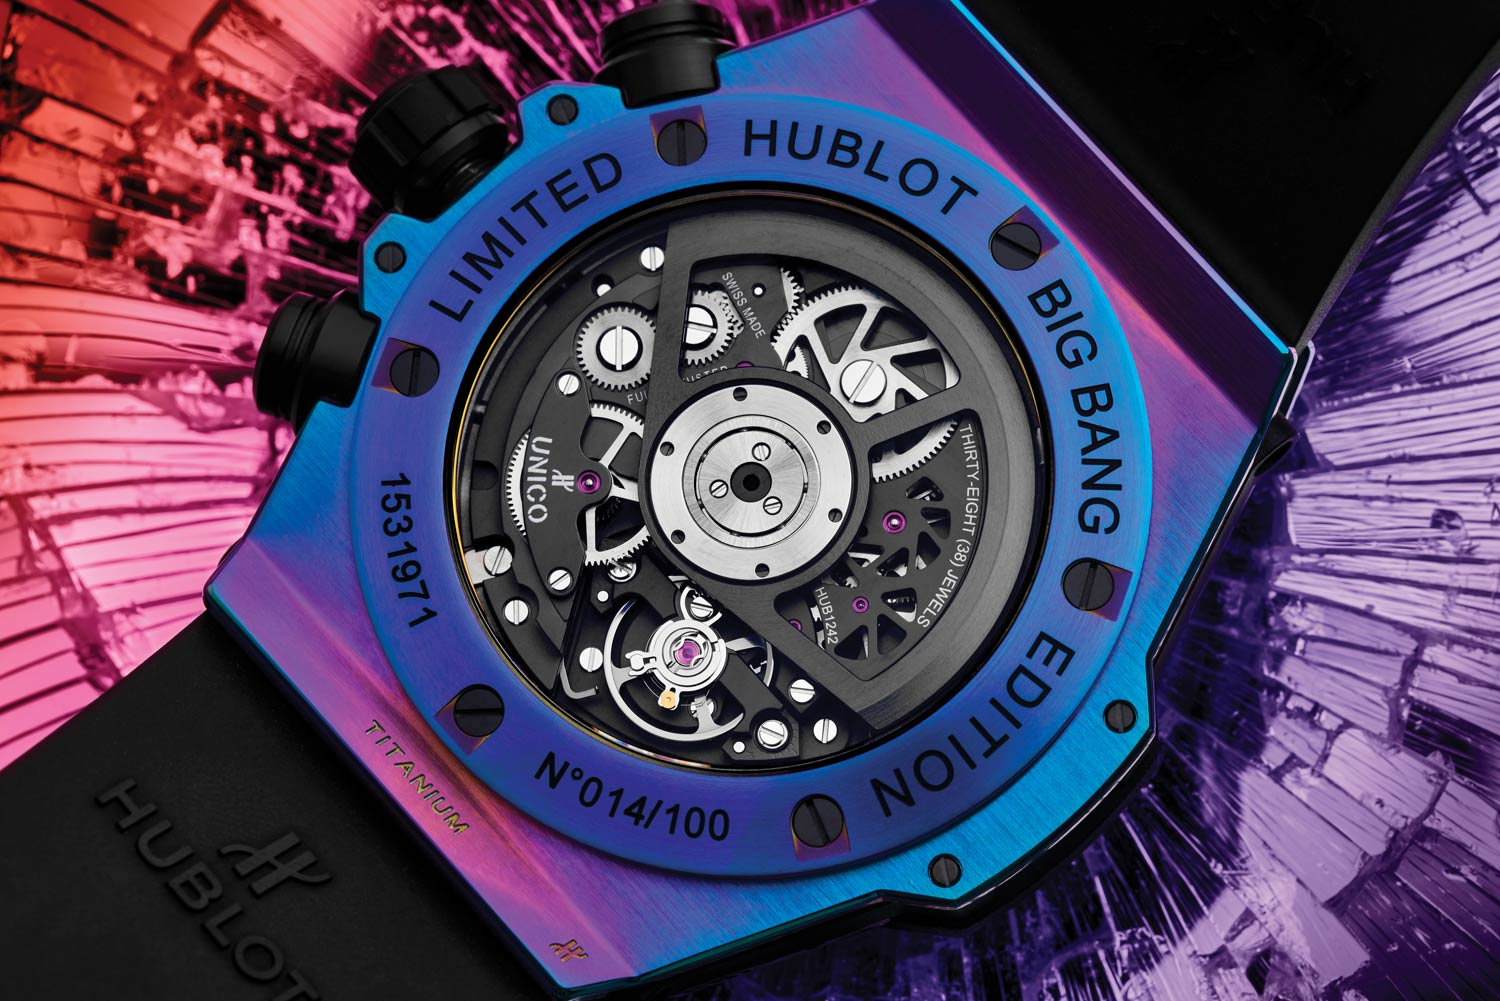 The HUB1242 Unico in-house automatic movement